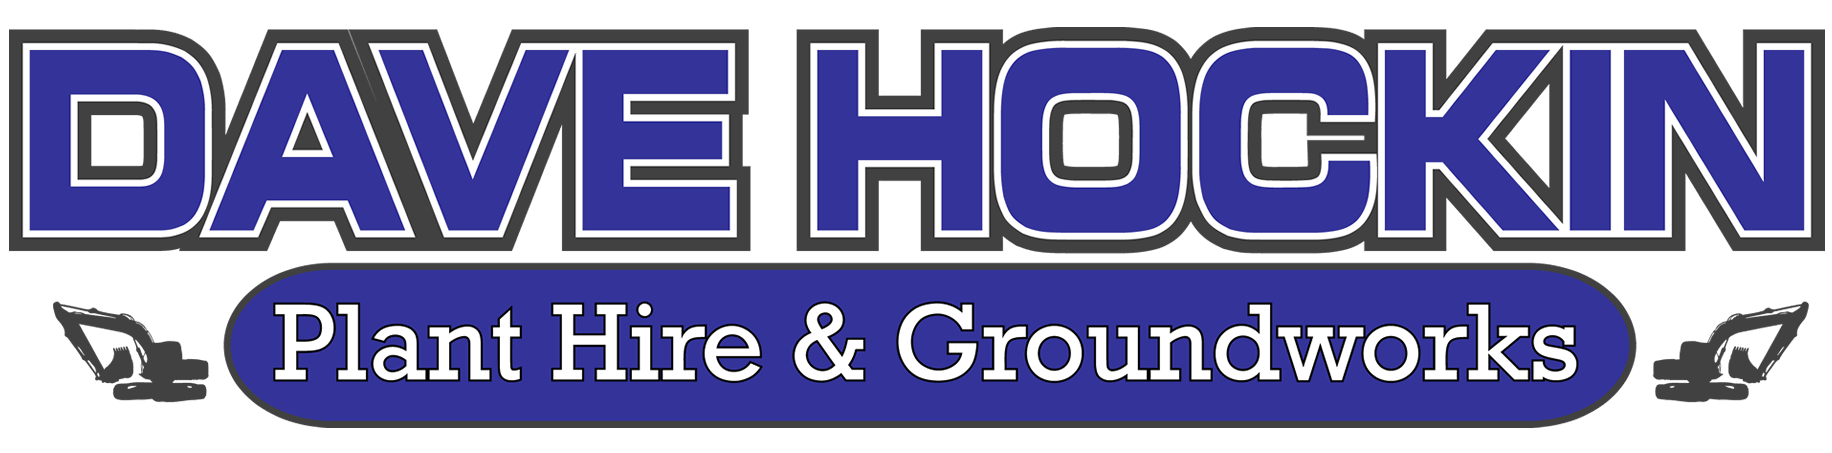 Dave Hocking Plant Hire Groundworks Devon